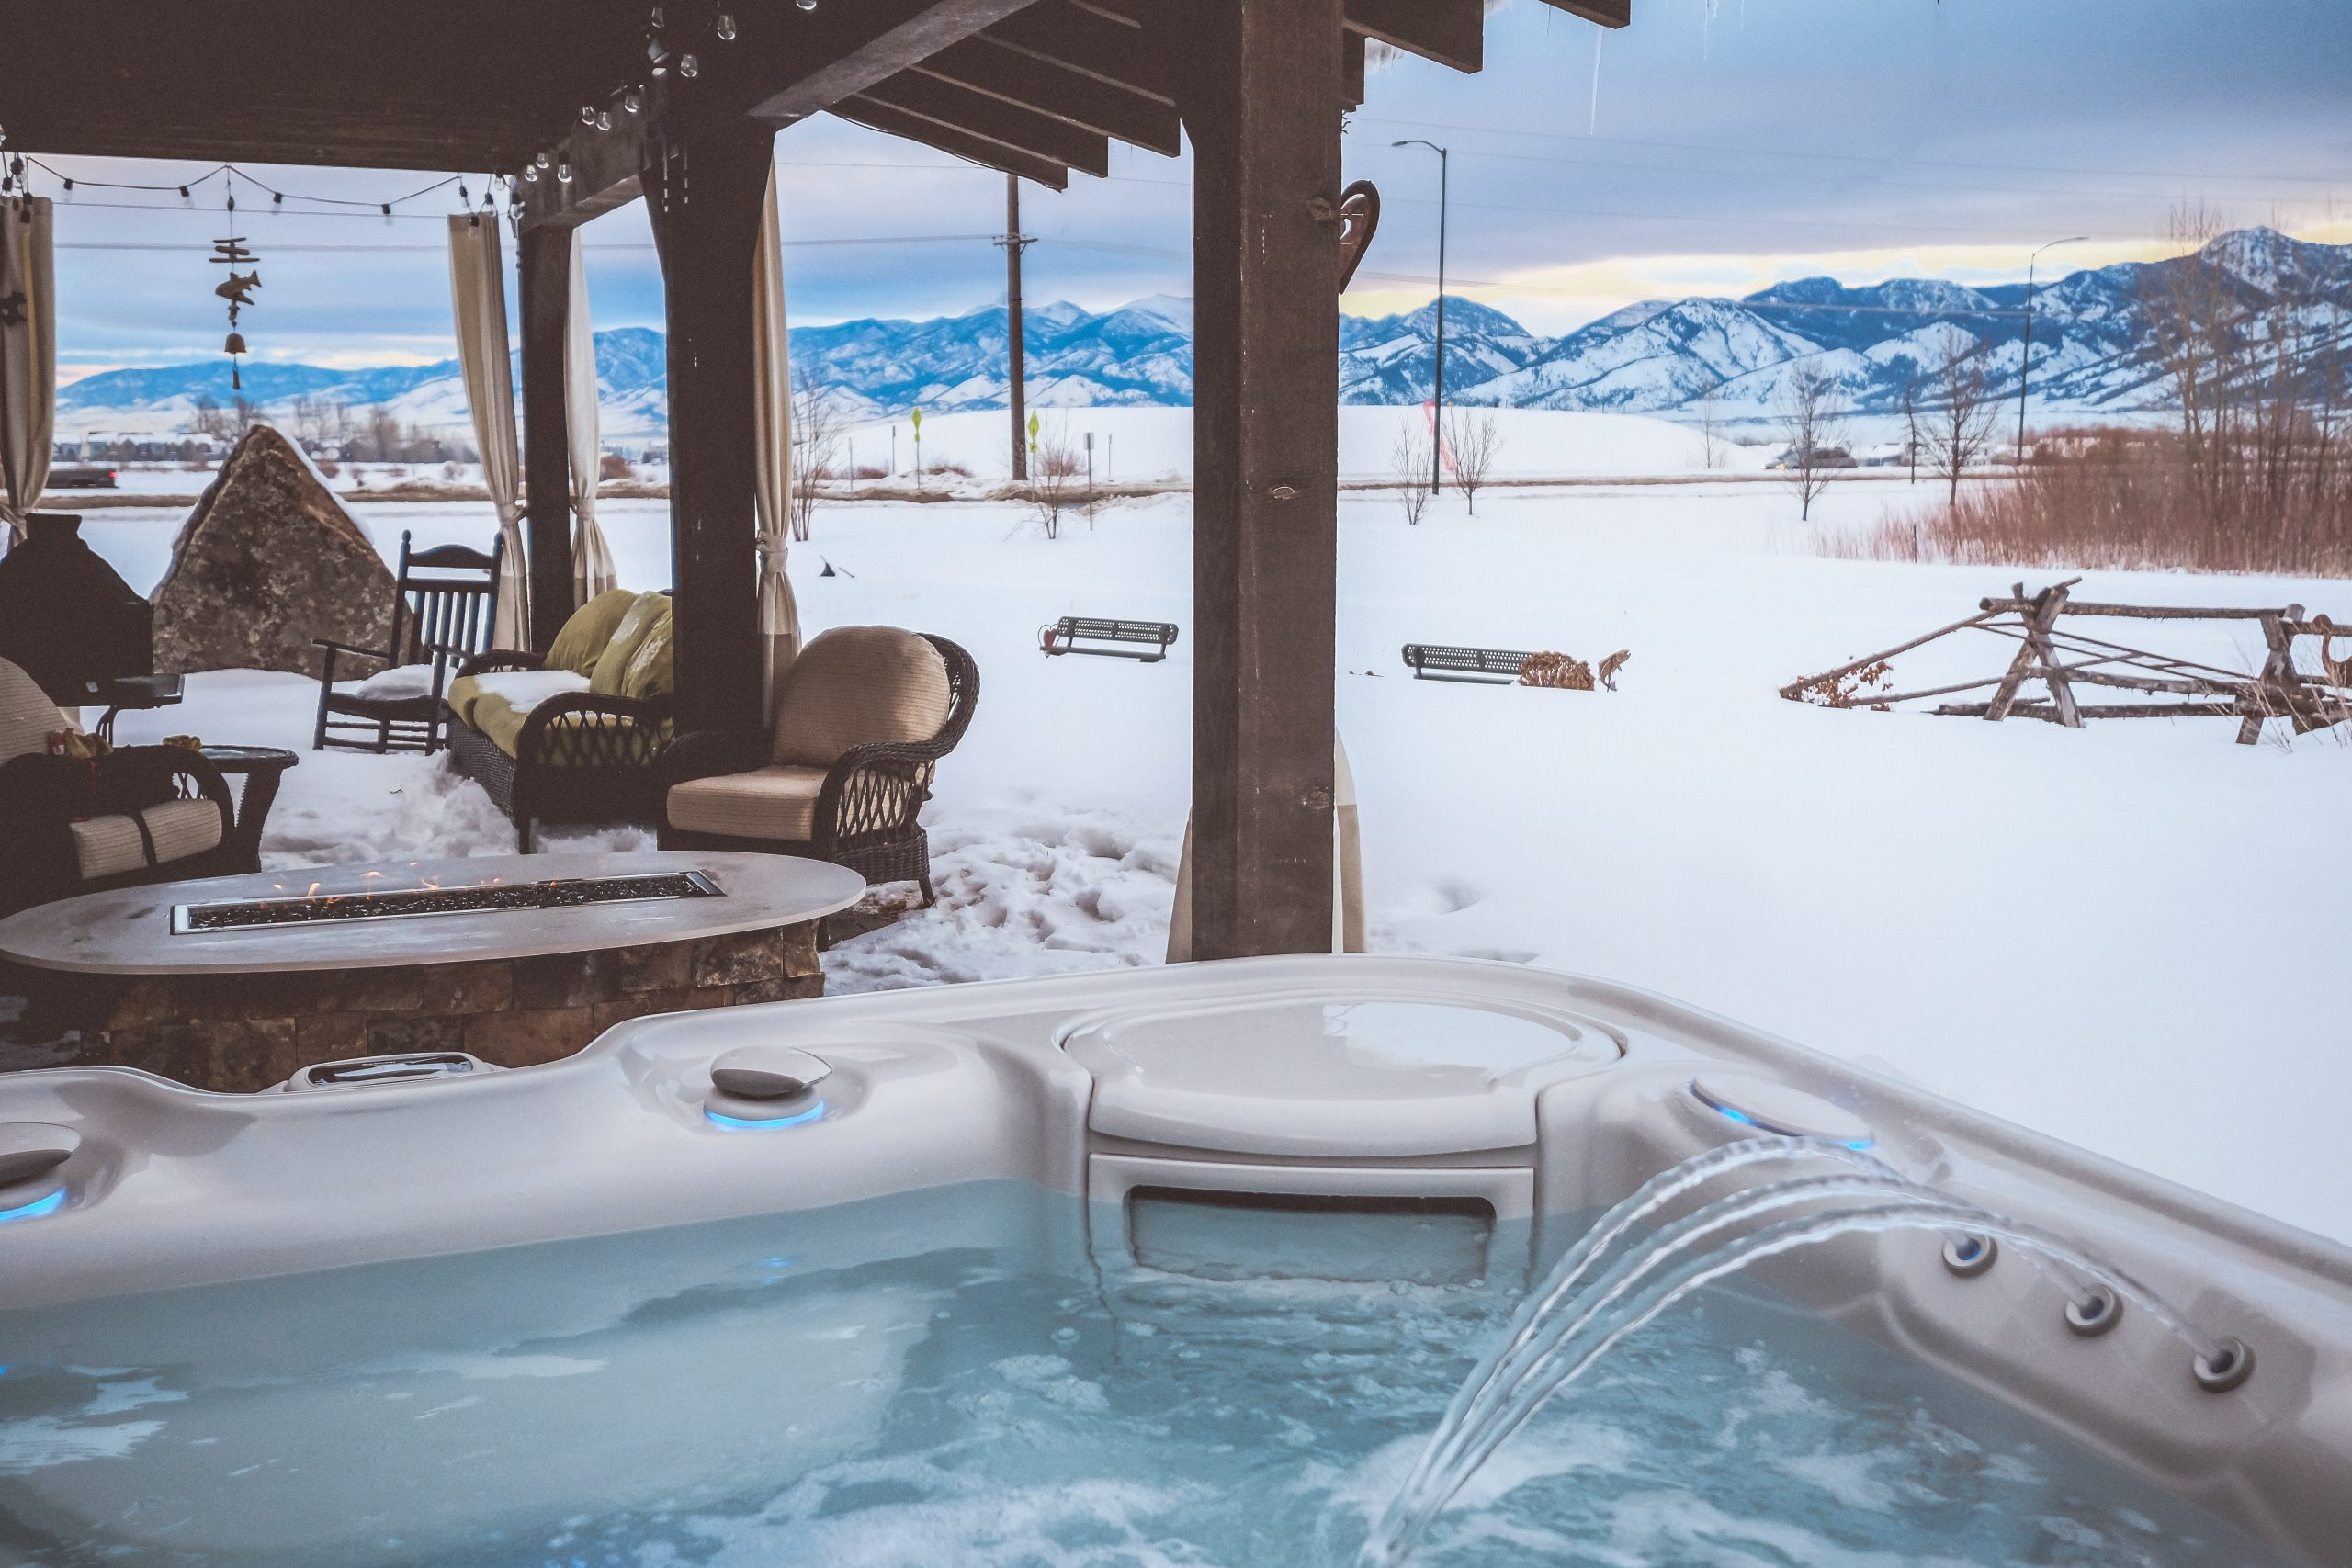 Hot Tub Accessories that Make for the Perfect Gift